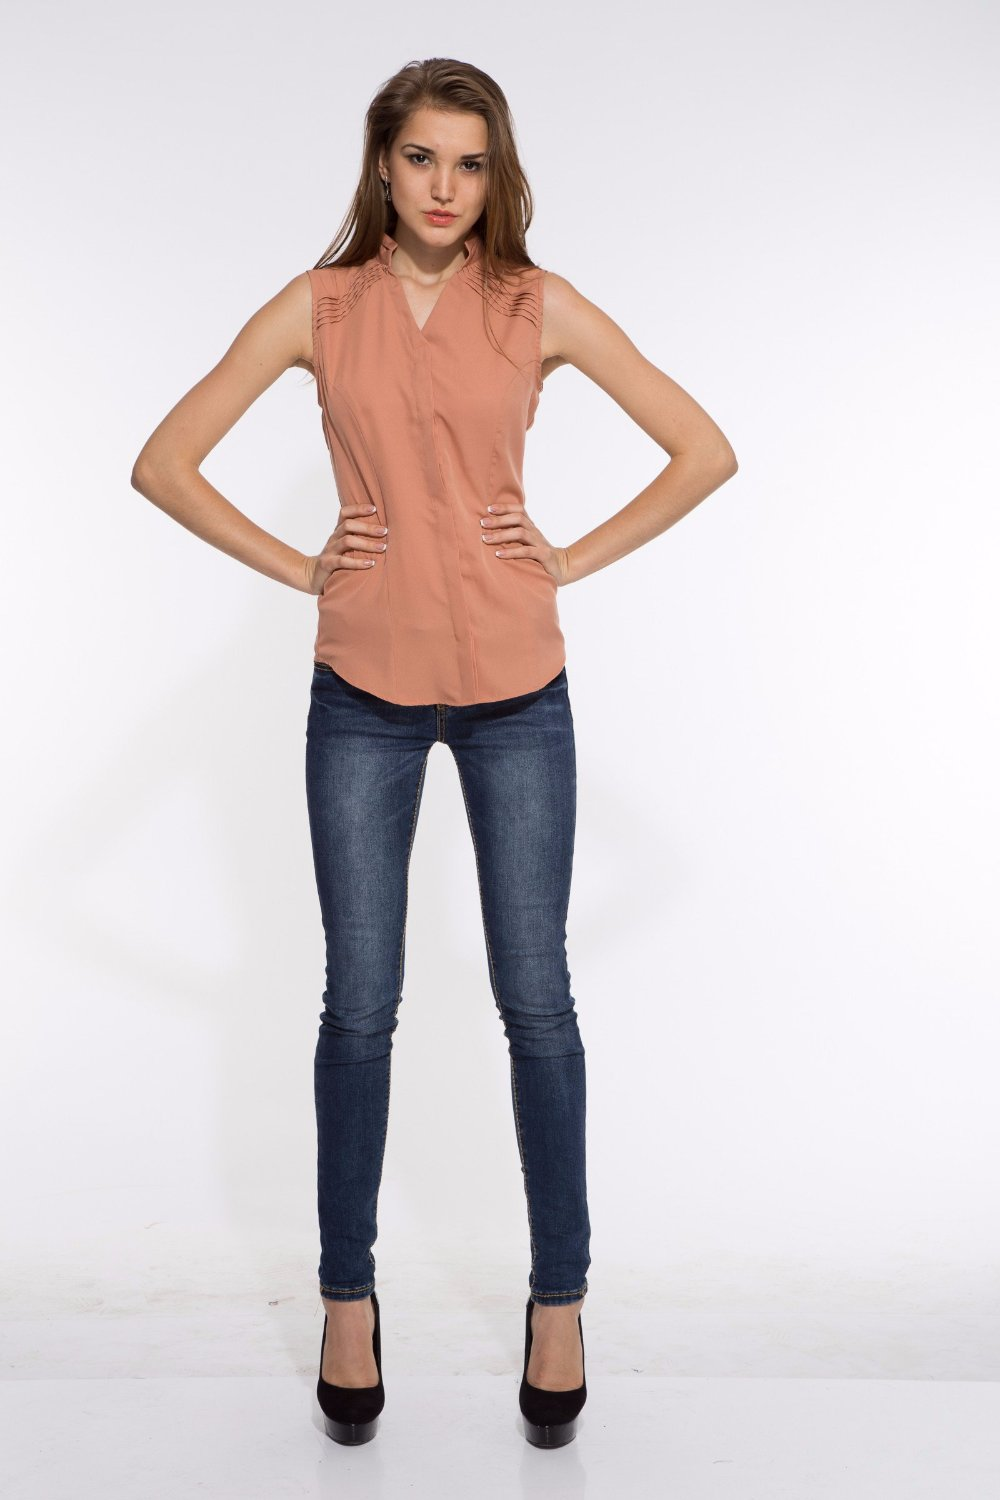 Shoulder Pin Tuck Top in Beige Front